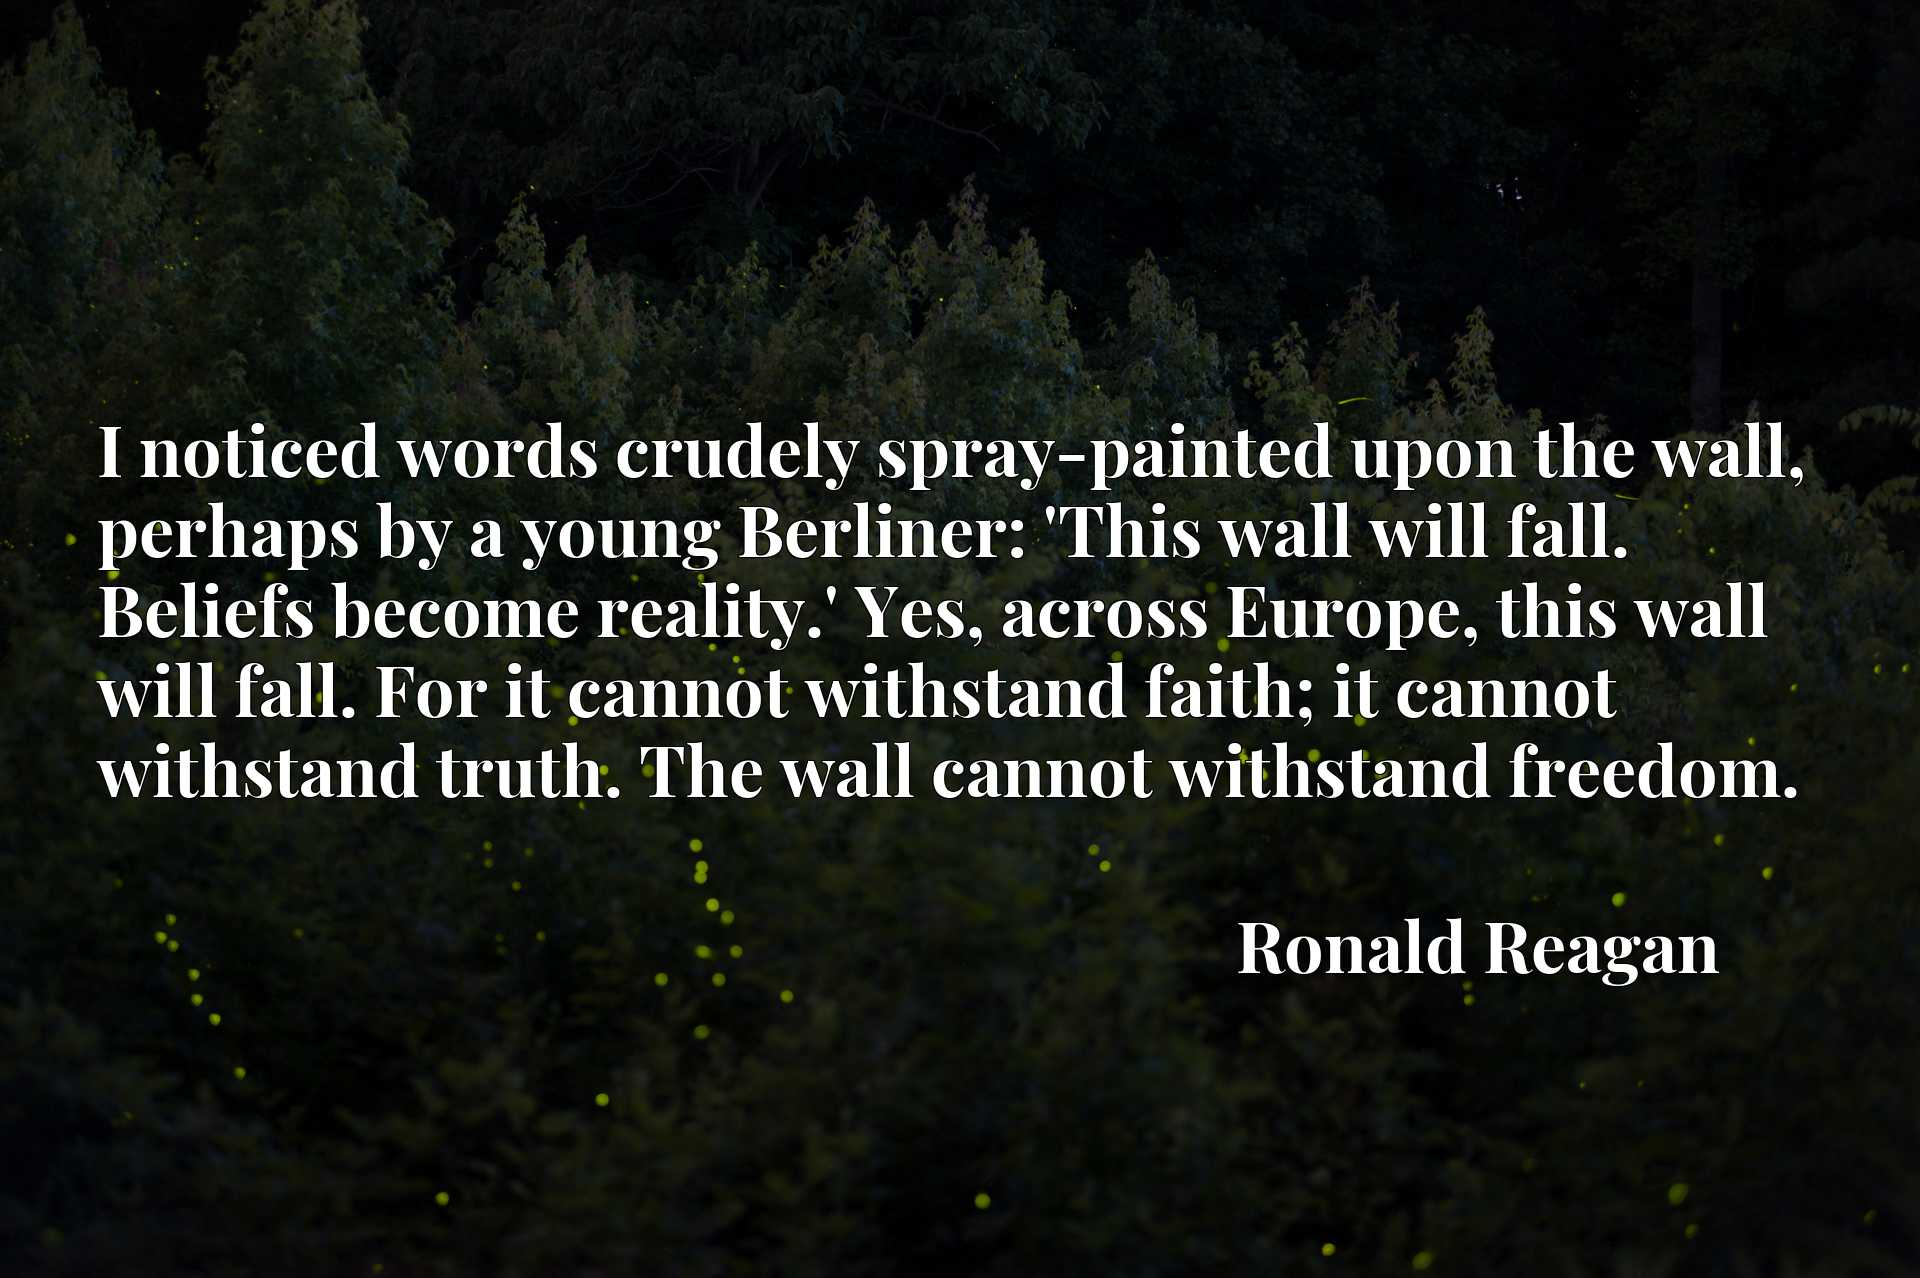 I noticed words crudely spray-painted upon the wall, perhaps by a young Berliner: 'This wall will fall. Beliefs become reality.' Yes, across Europe, this wall will fall. For it cannot withstand faith; it cannot withstand truth. The wall cannot withstand freedom.